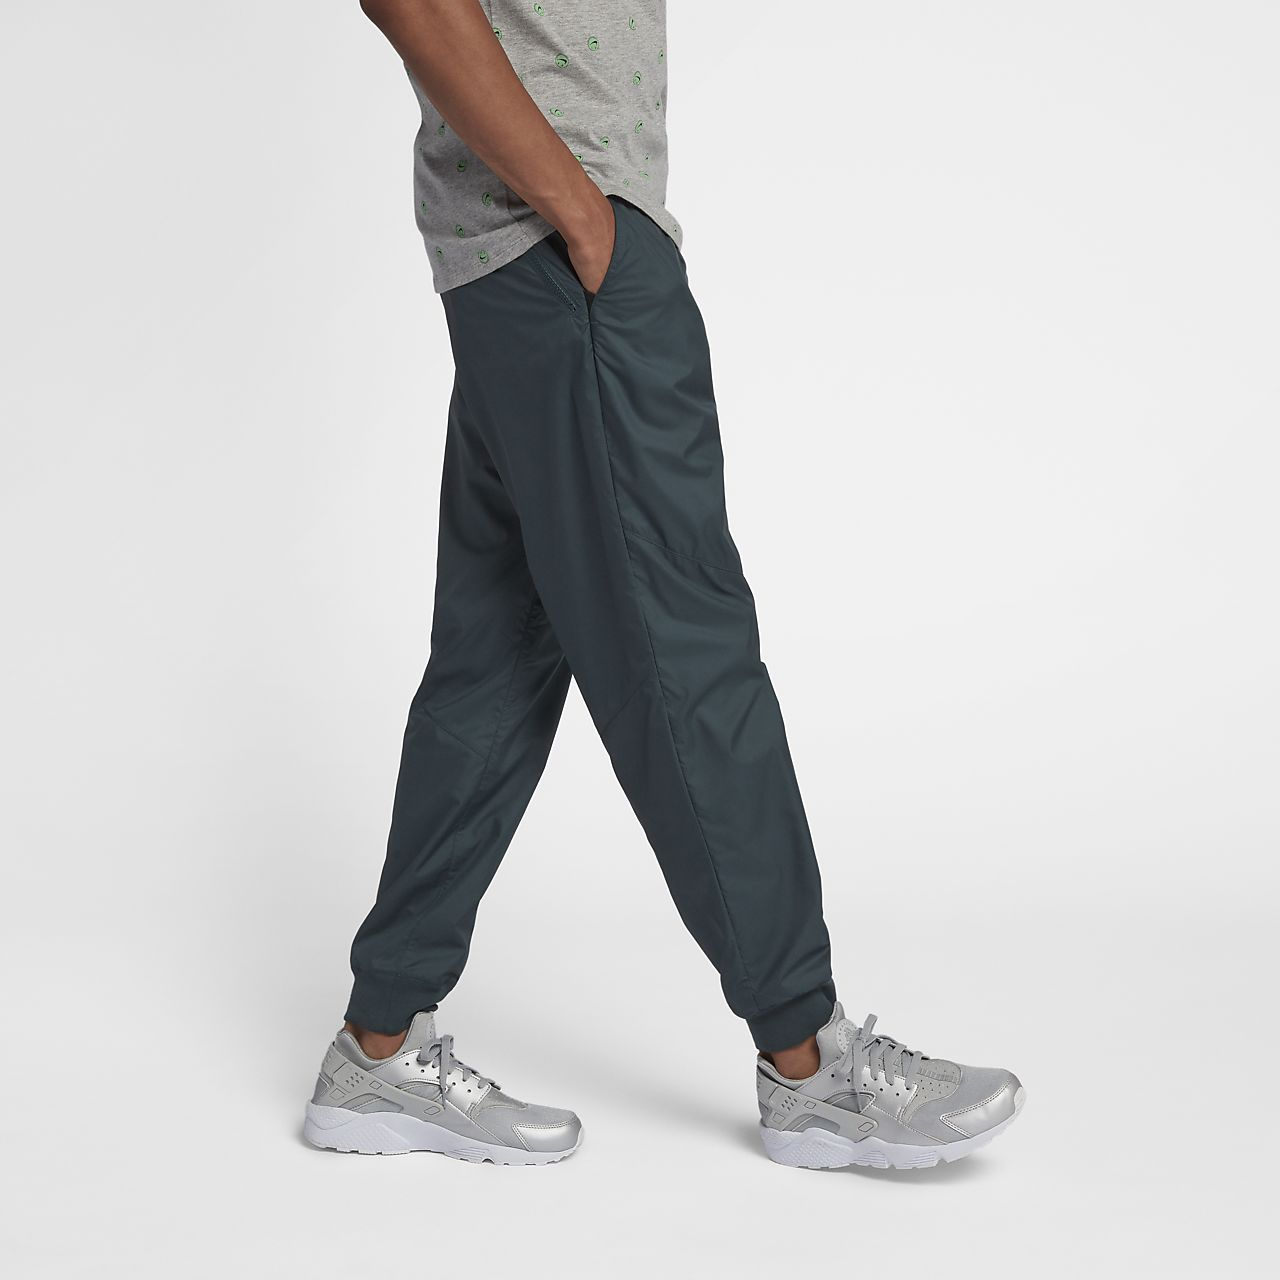 Low Resolution Nike Sportswear Windrunner Men's Pants Nike Sportswear  Windrunner Men's Pants